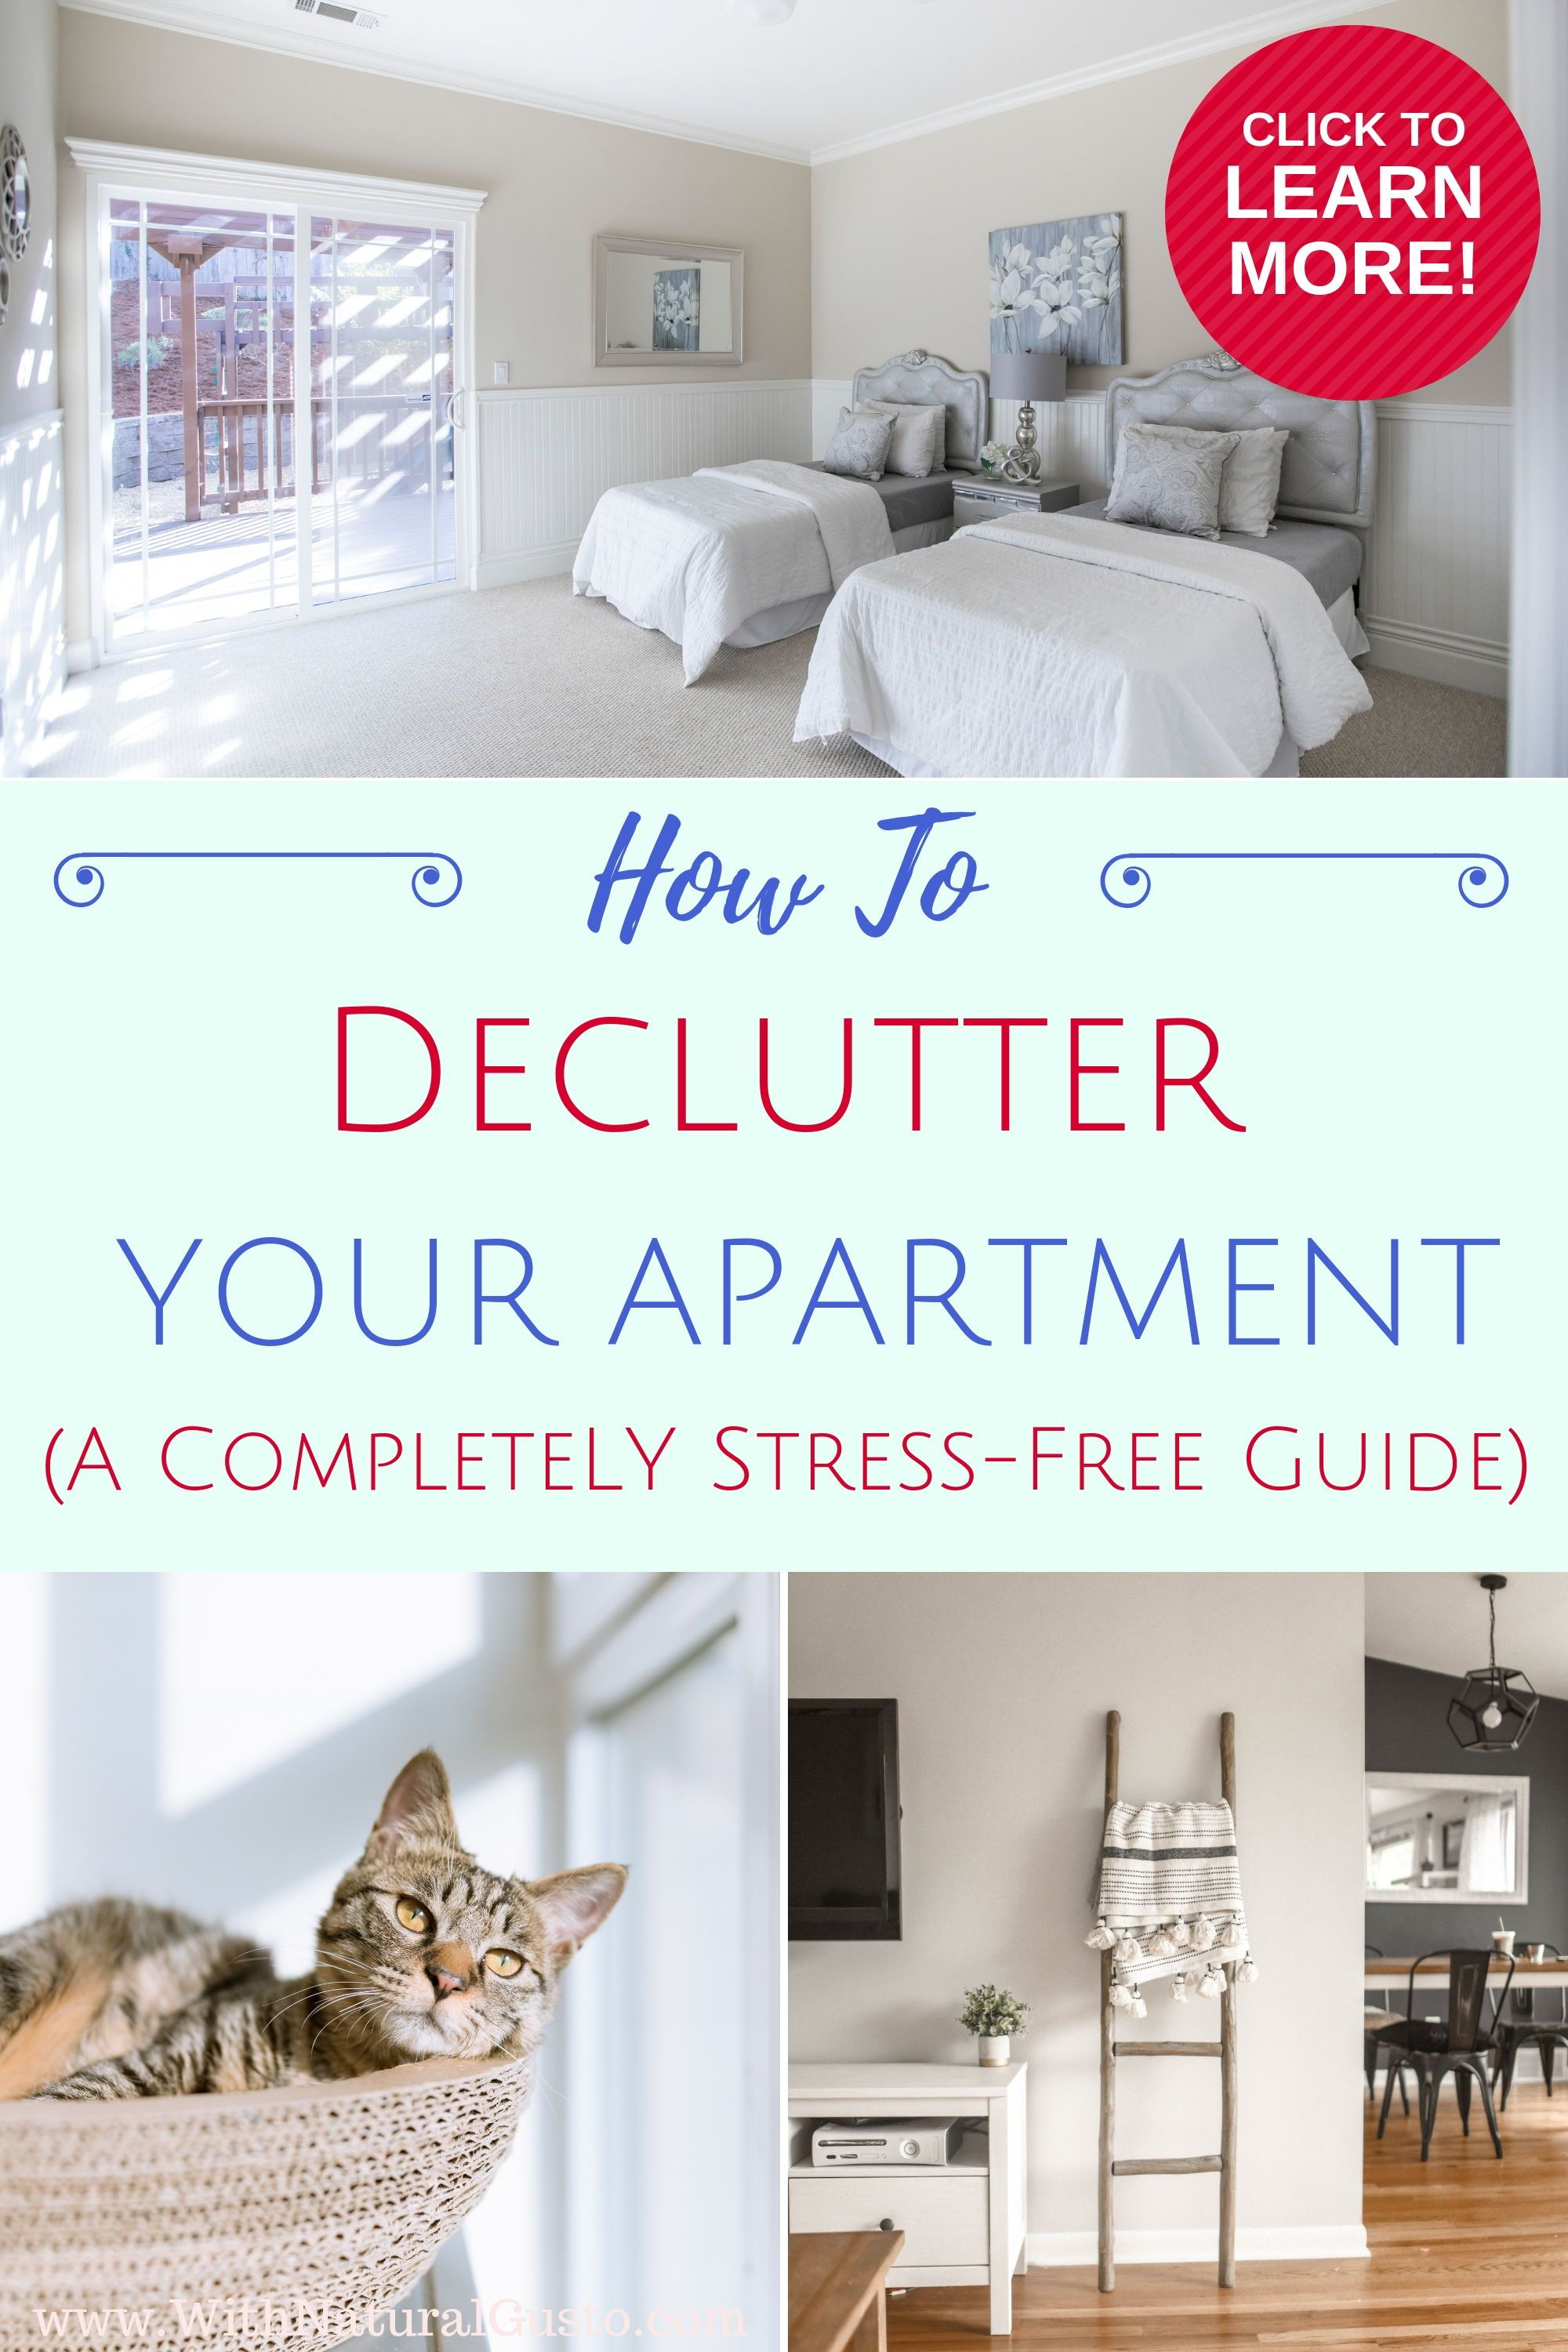 How To Declutter Your Apartment With Ease | simplify ...